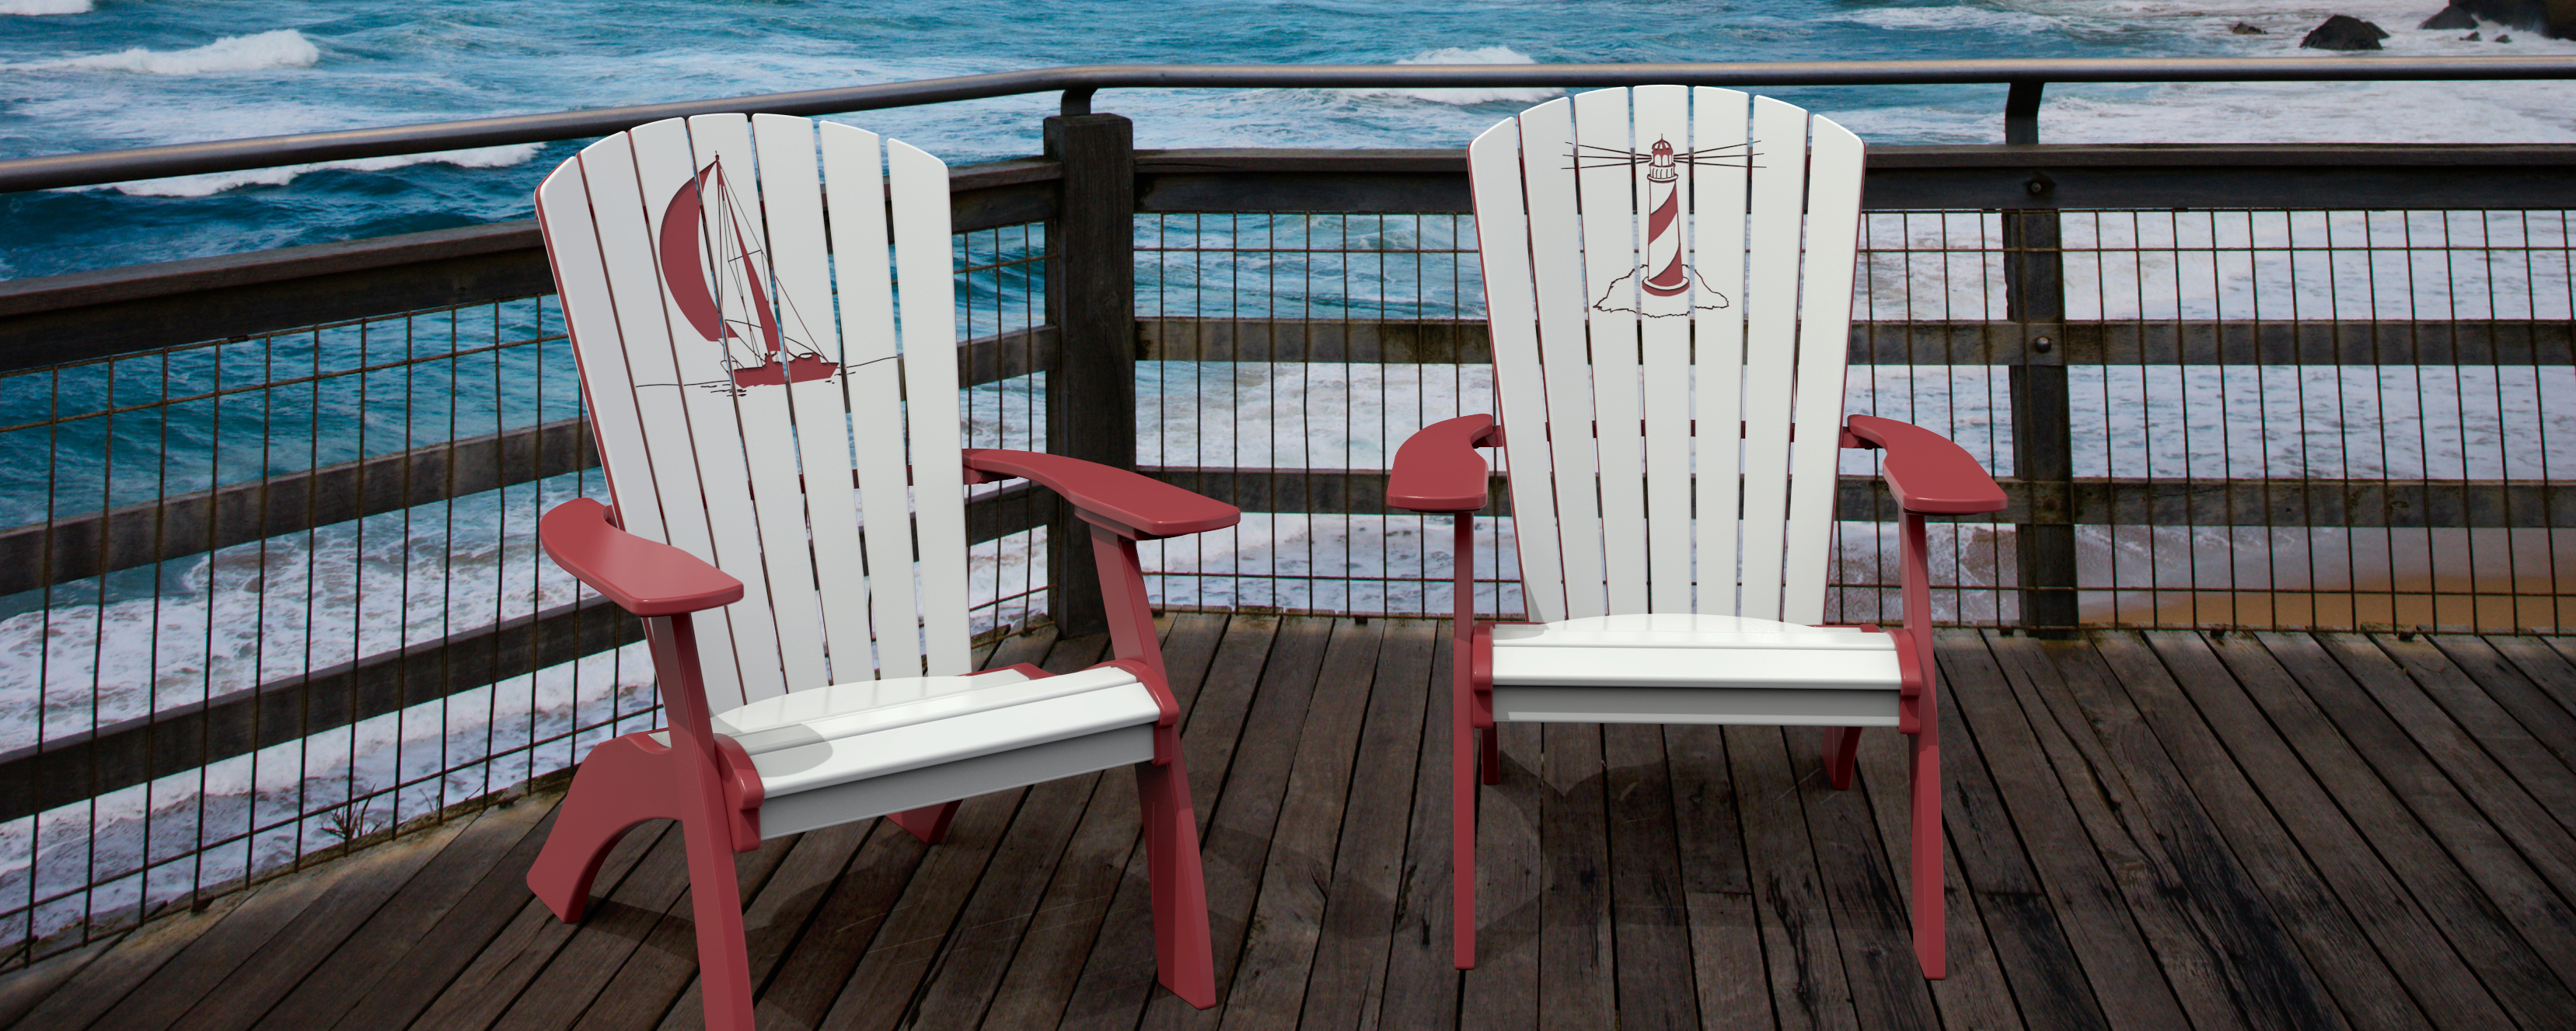 Engraved Coastal Adirondak chairs